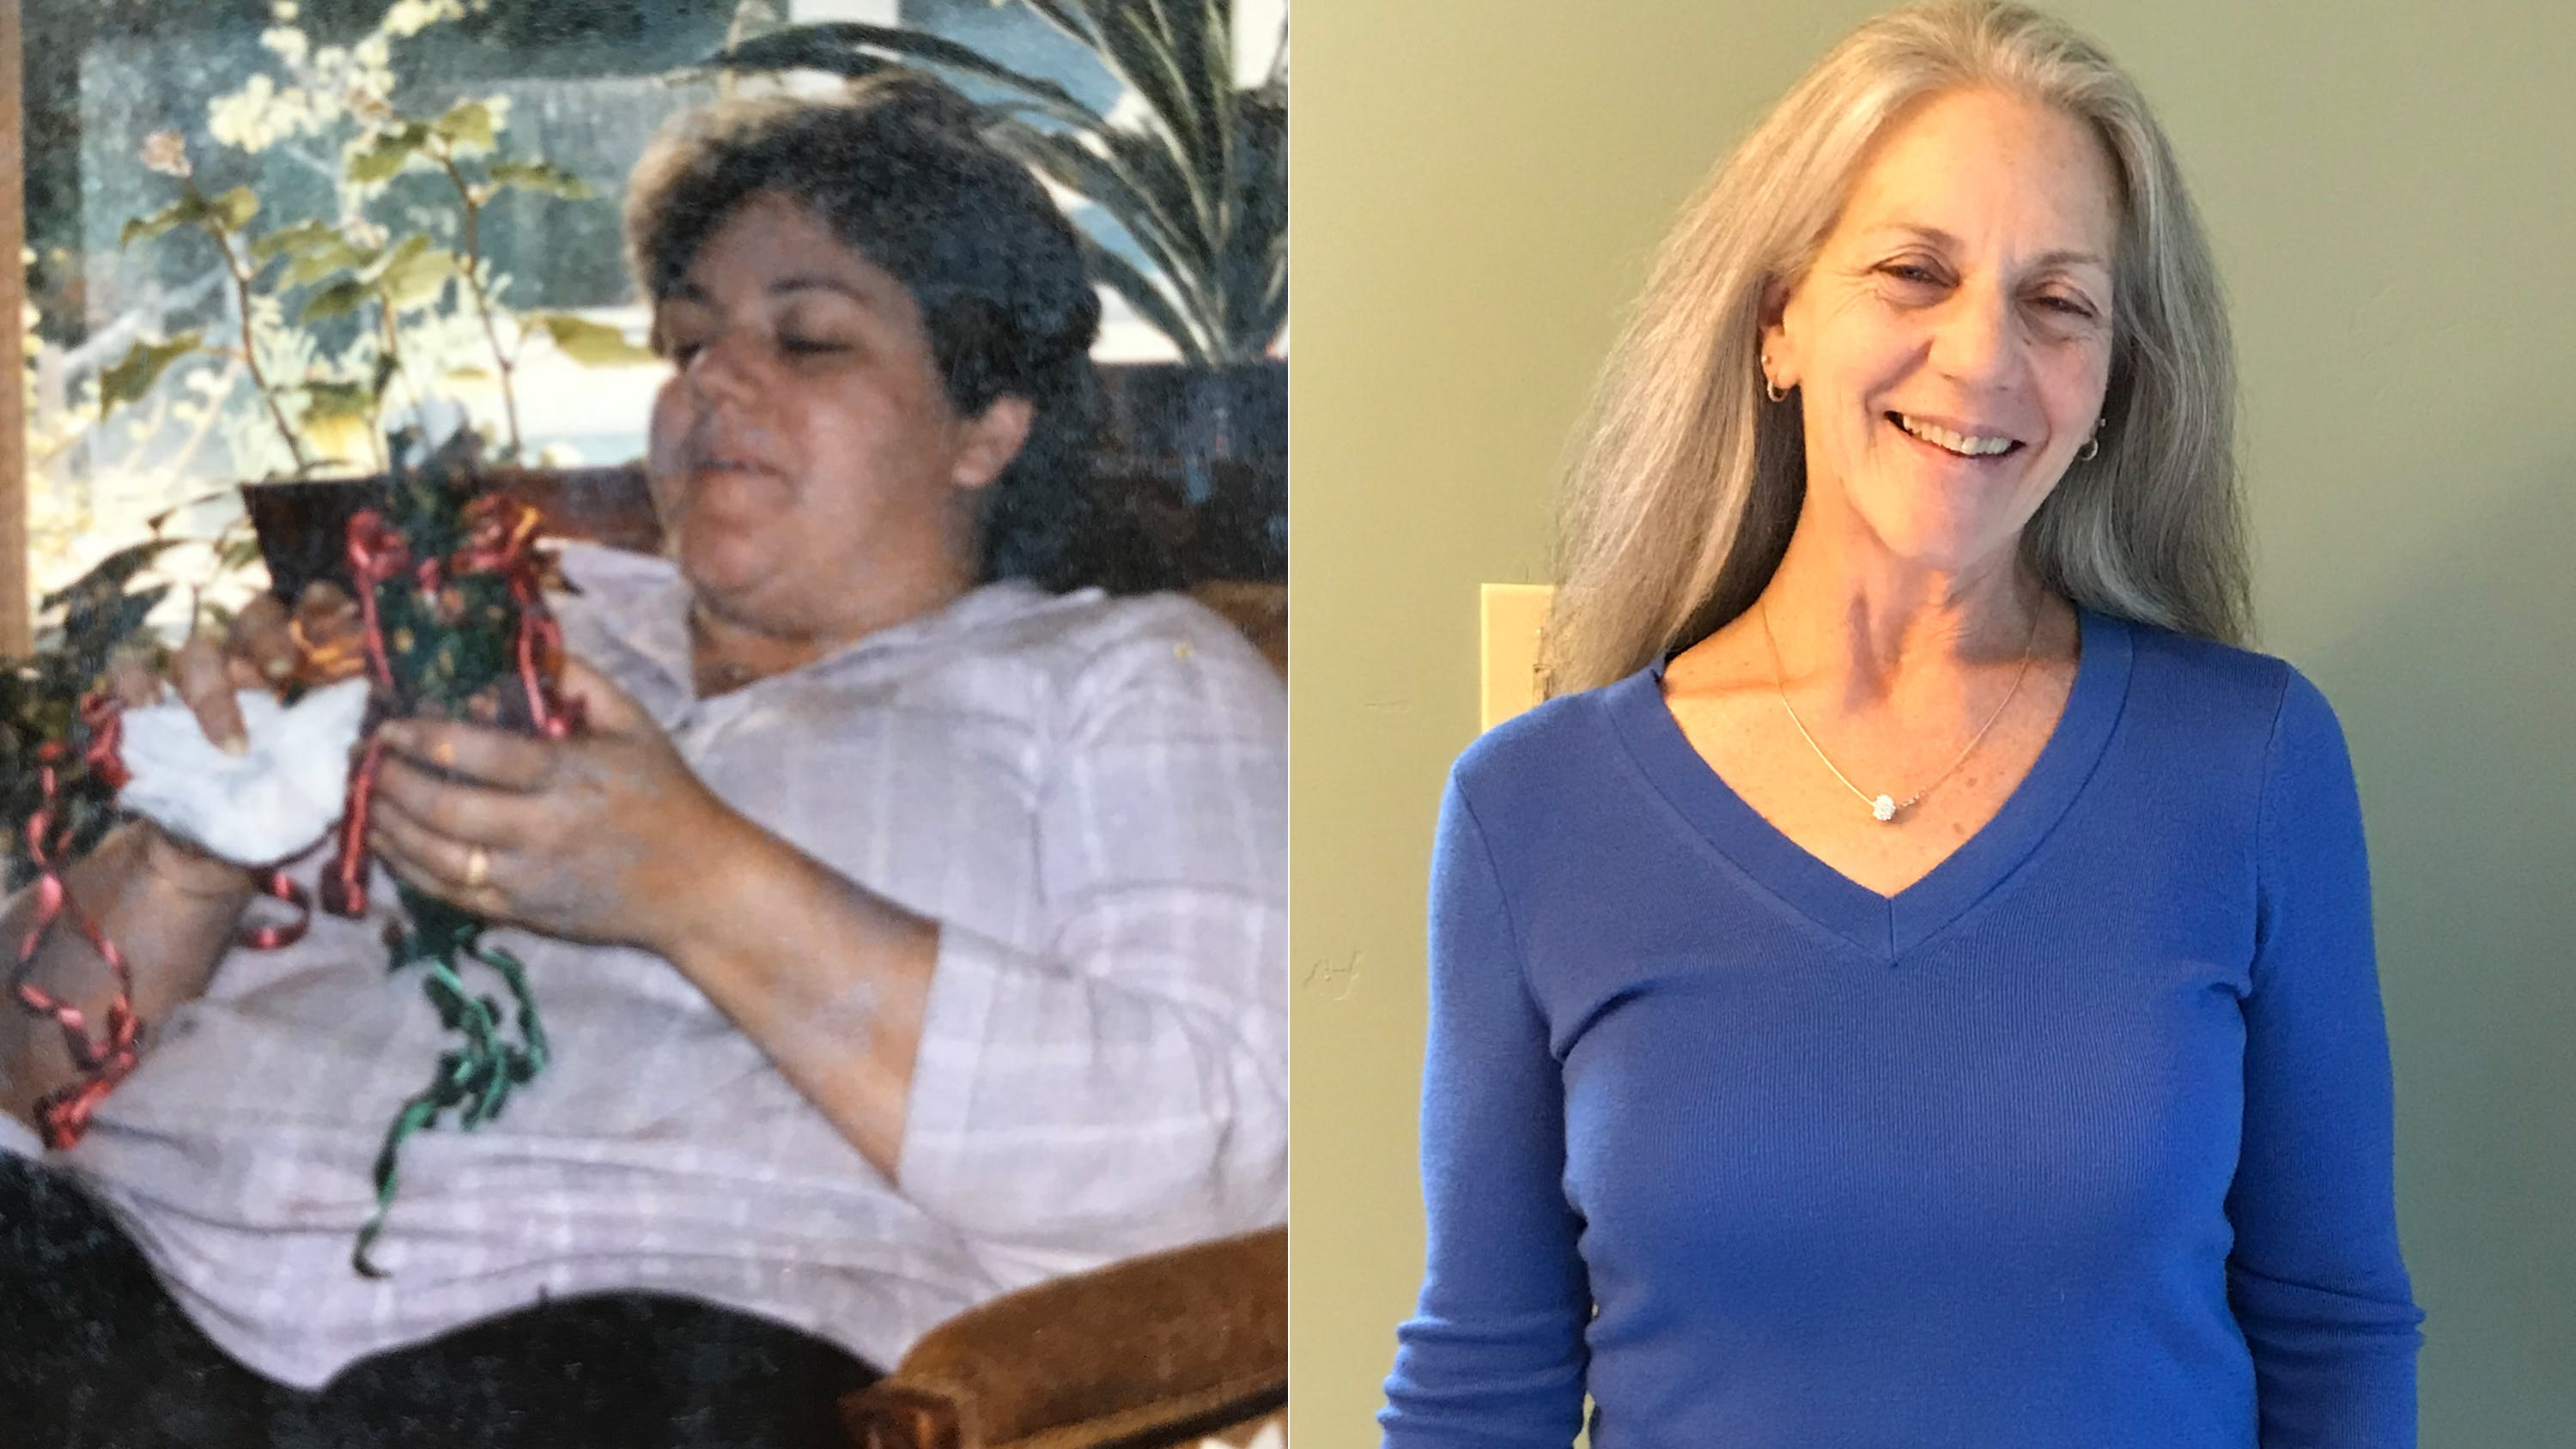 """The keto diet: """"Will eat this way for the rest of my life"""""""